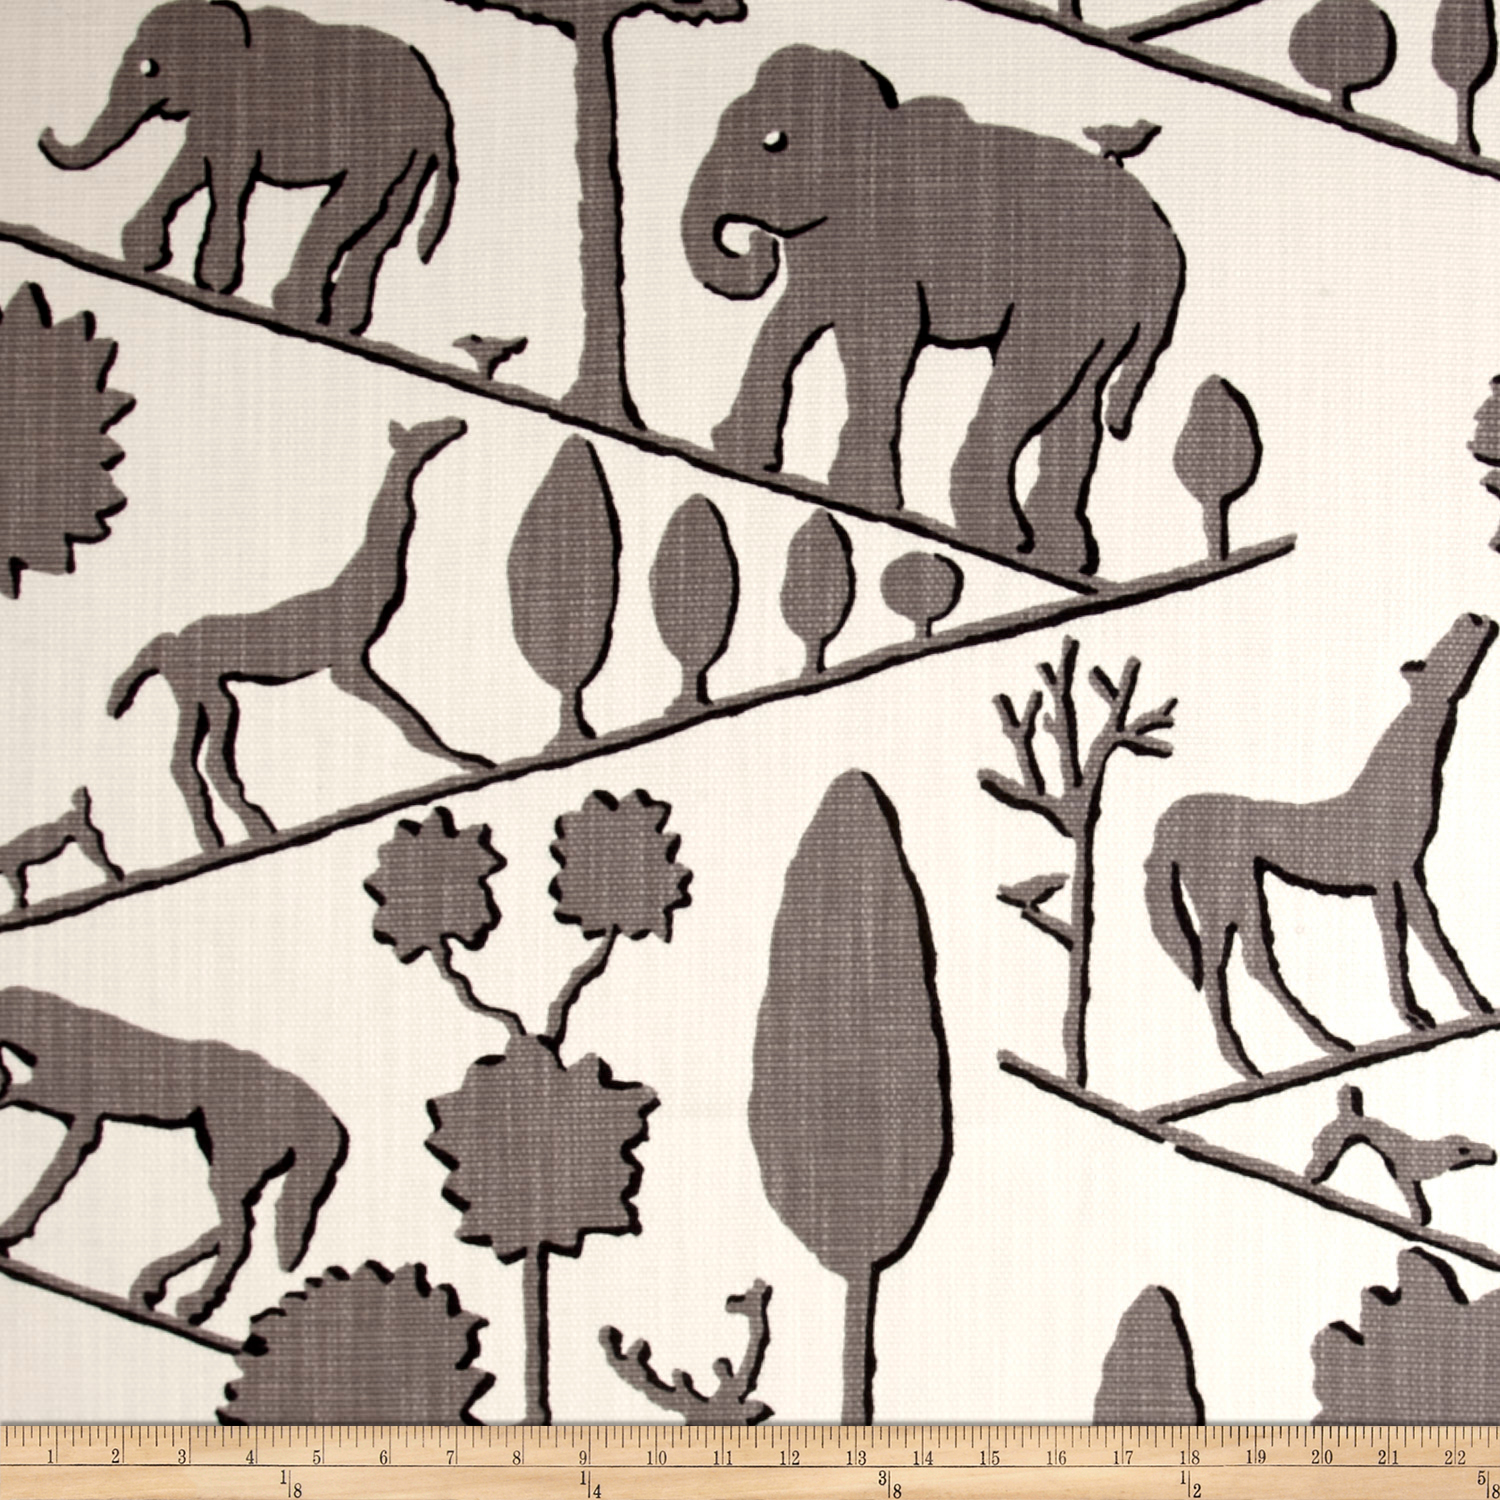 Braemore Jungle Walk/nom Basketweave Elephant Fabric